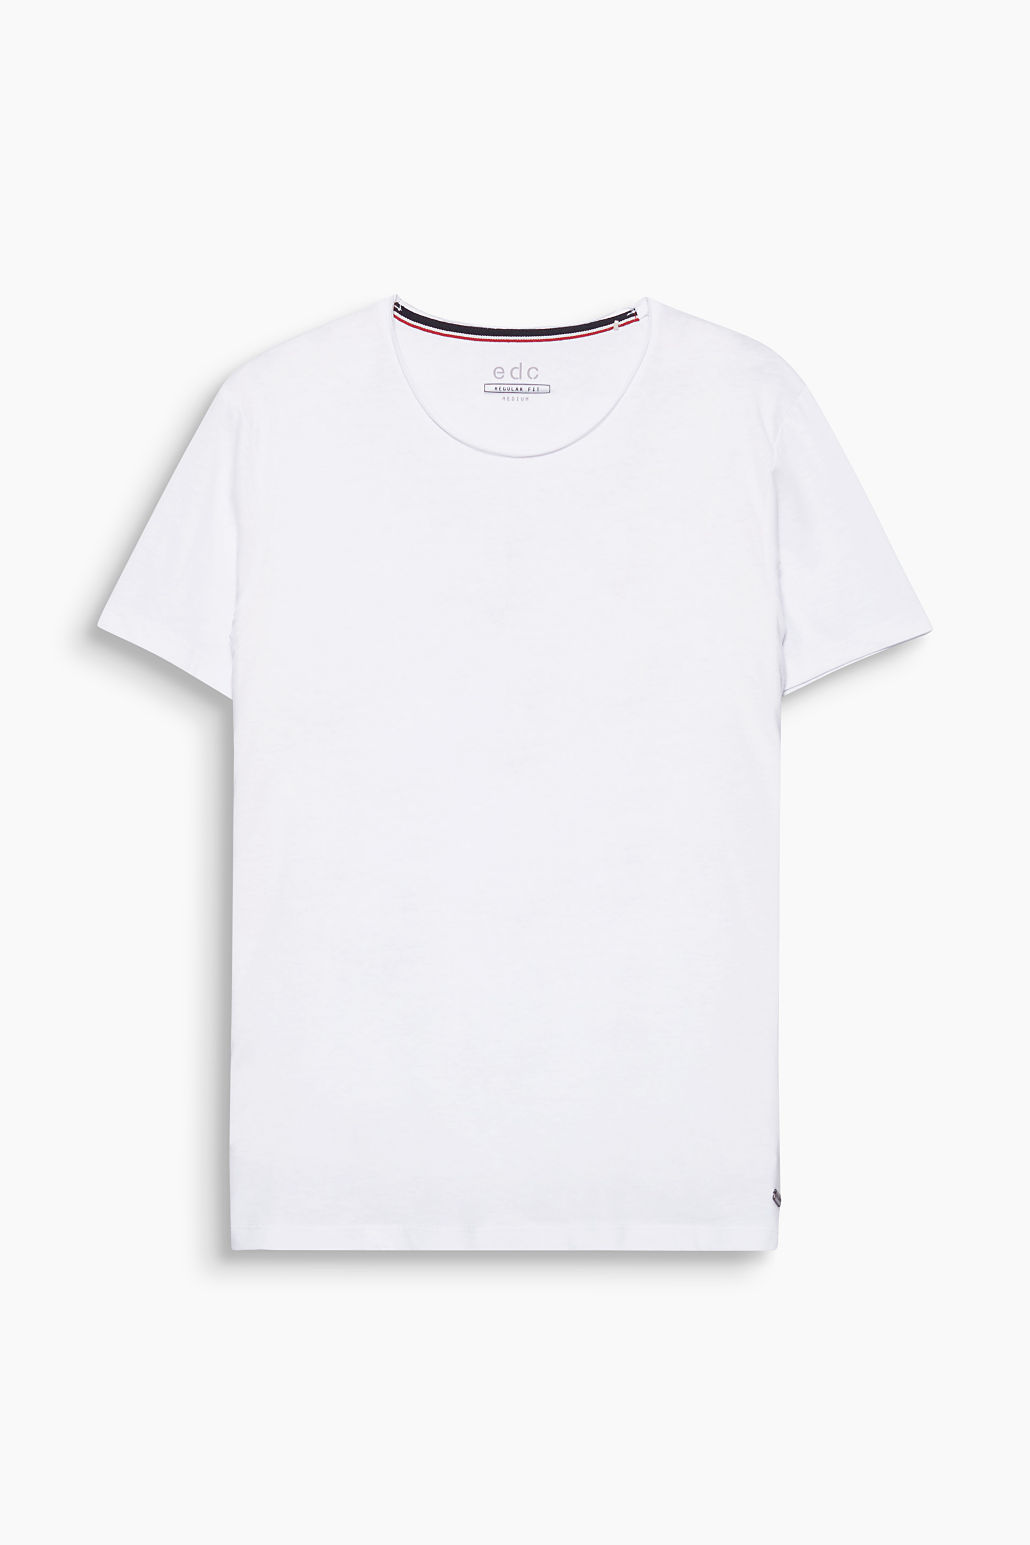 Esprit White 100 Organic Cotton Crew Neck T-Shirt